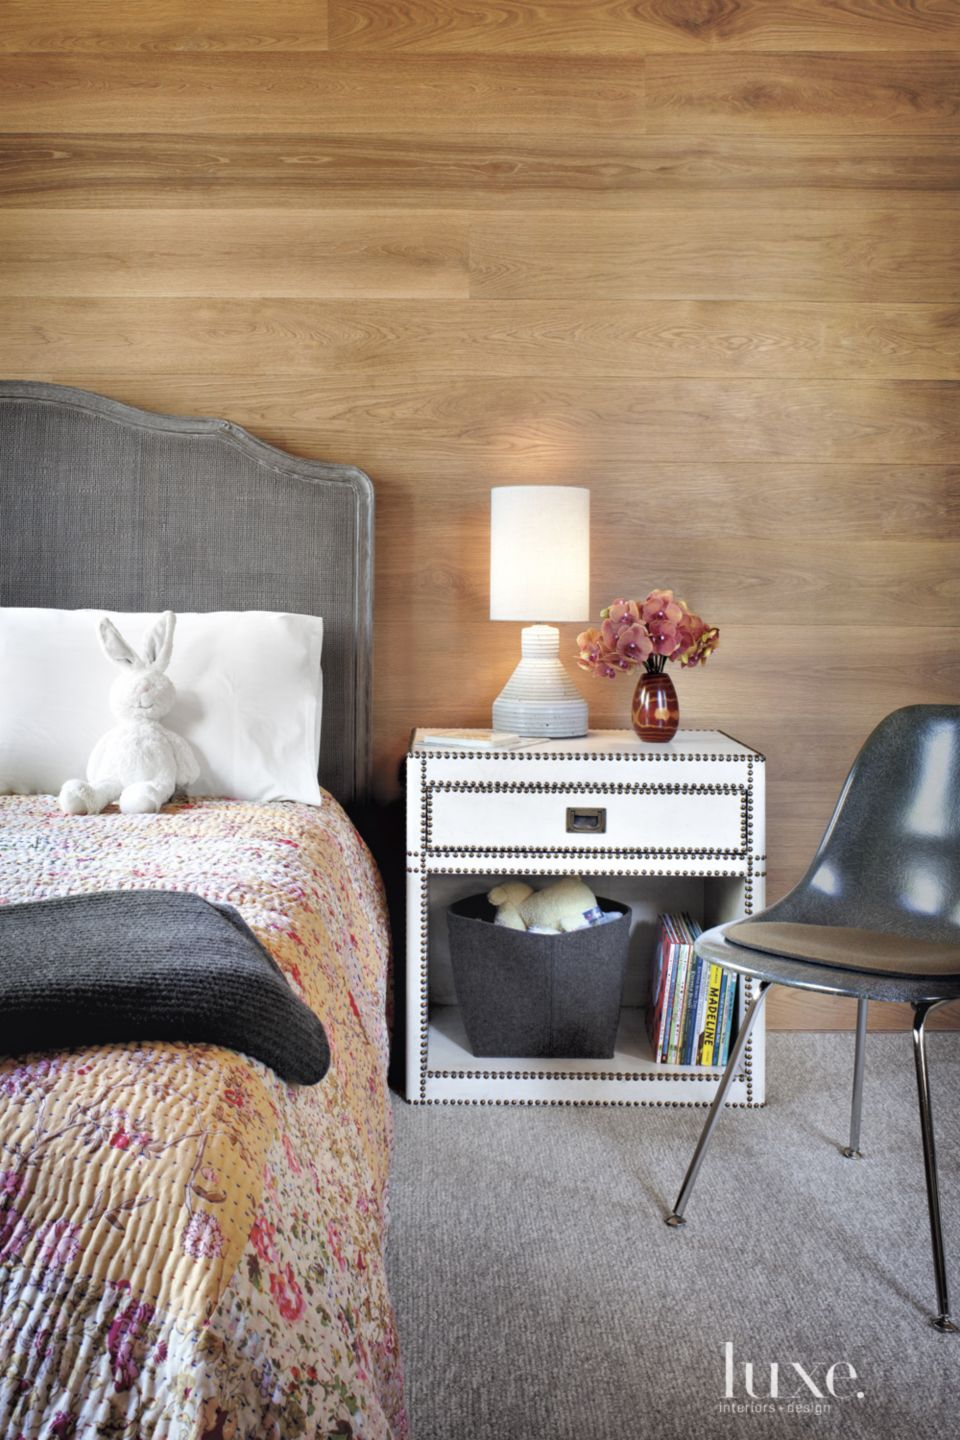 Contemporary White Oak Children's Bedroom with Wool Carpeting